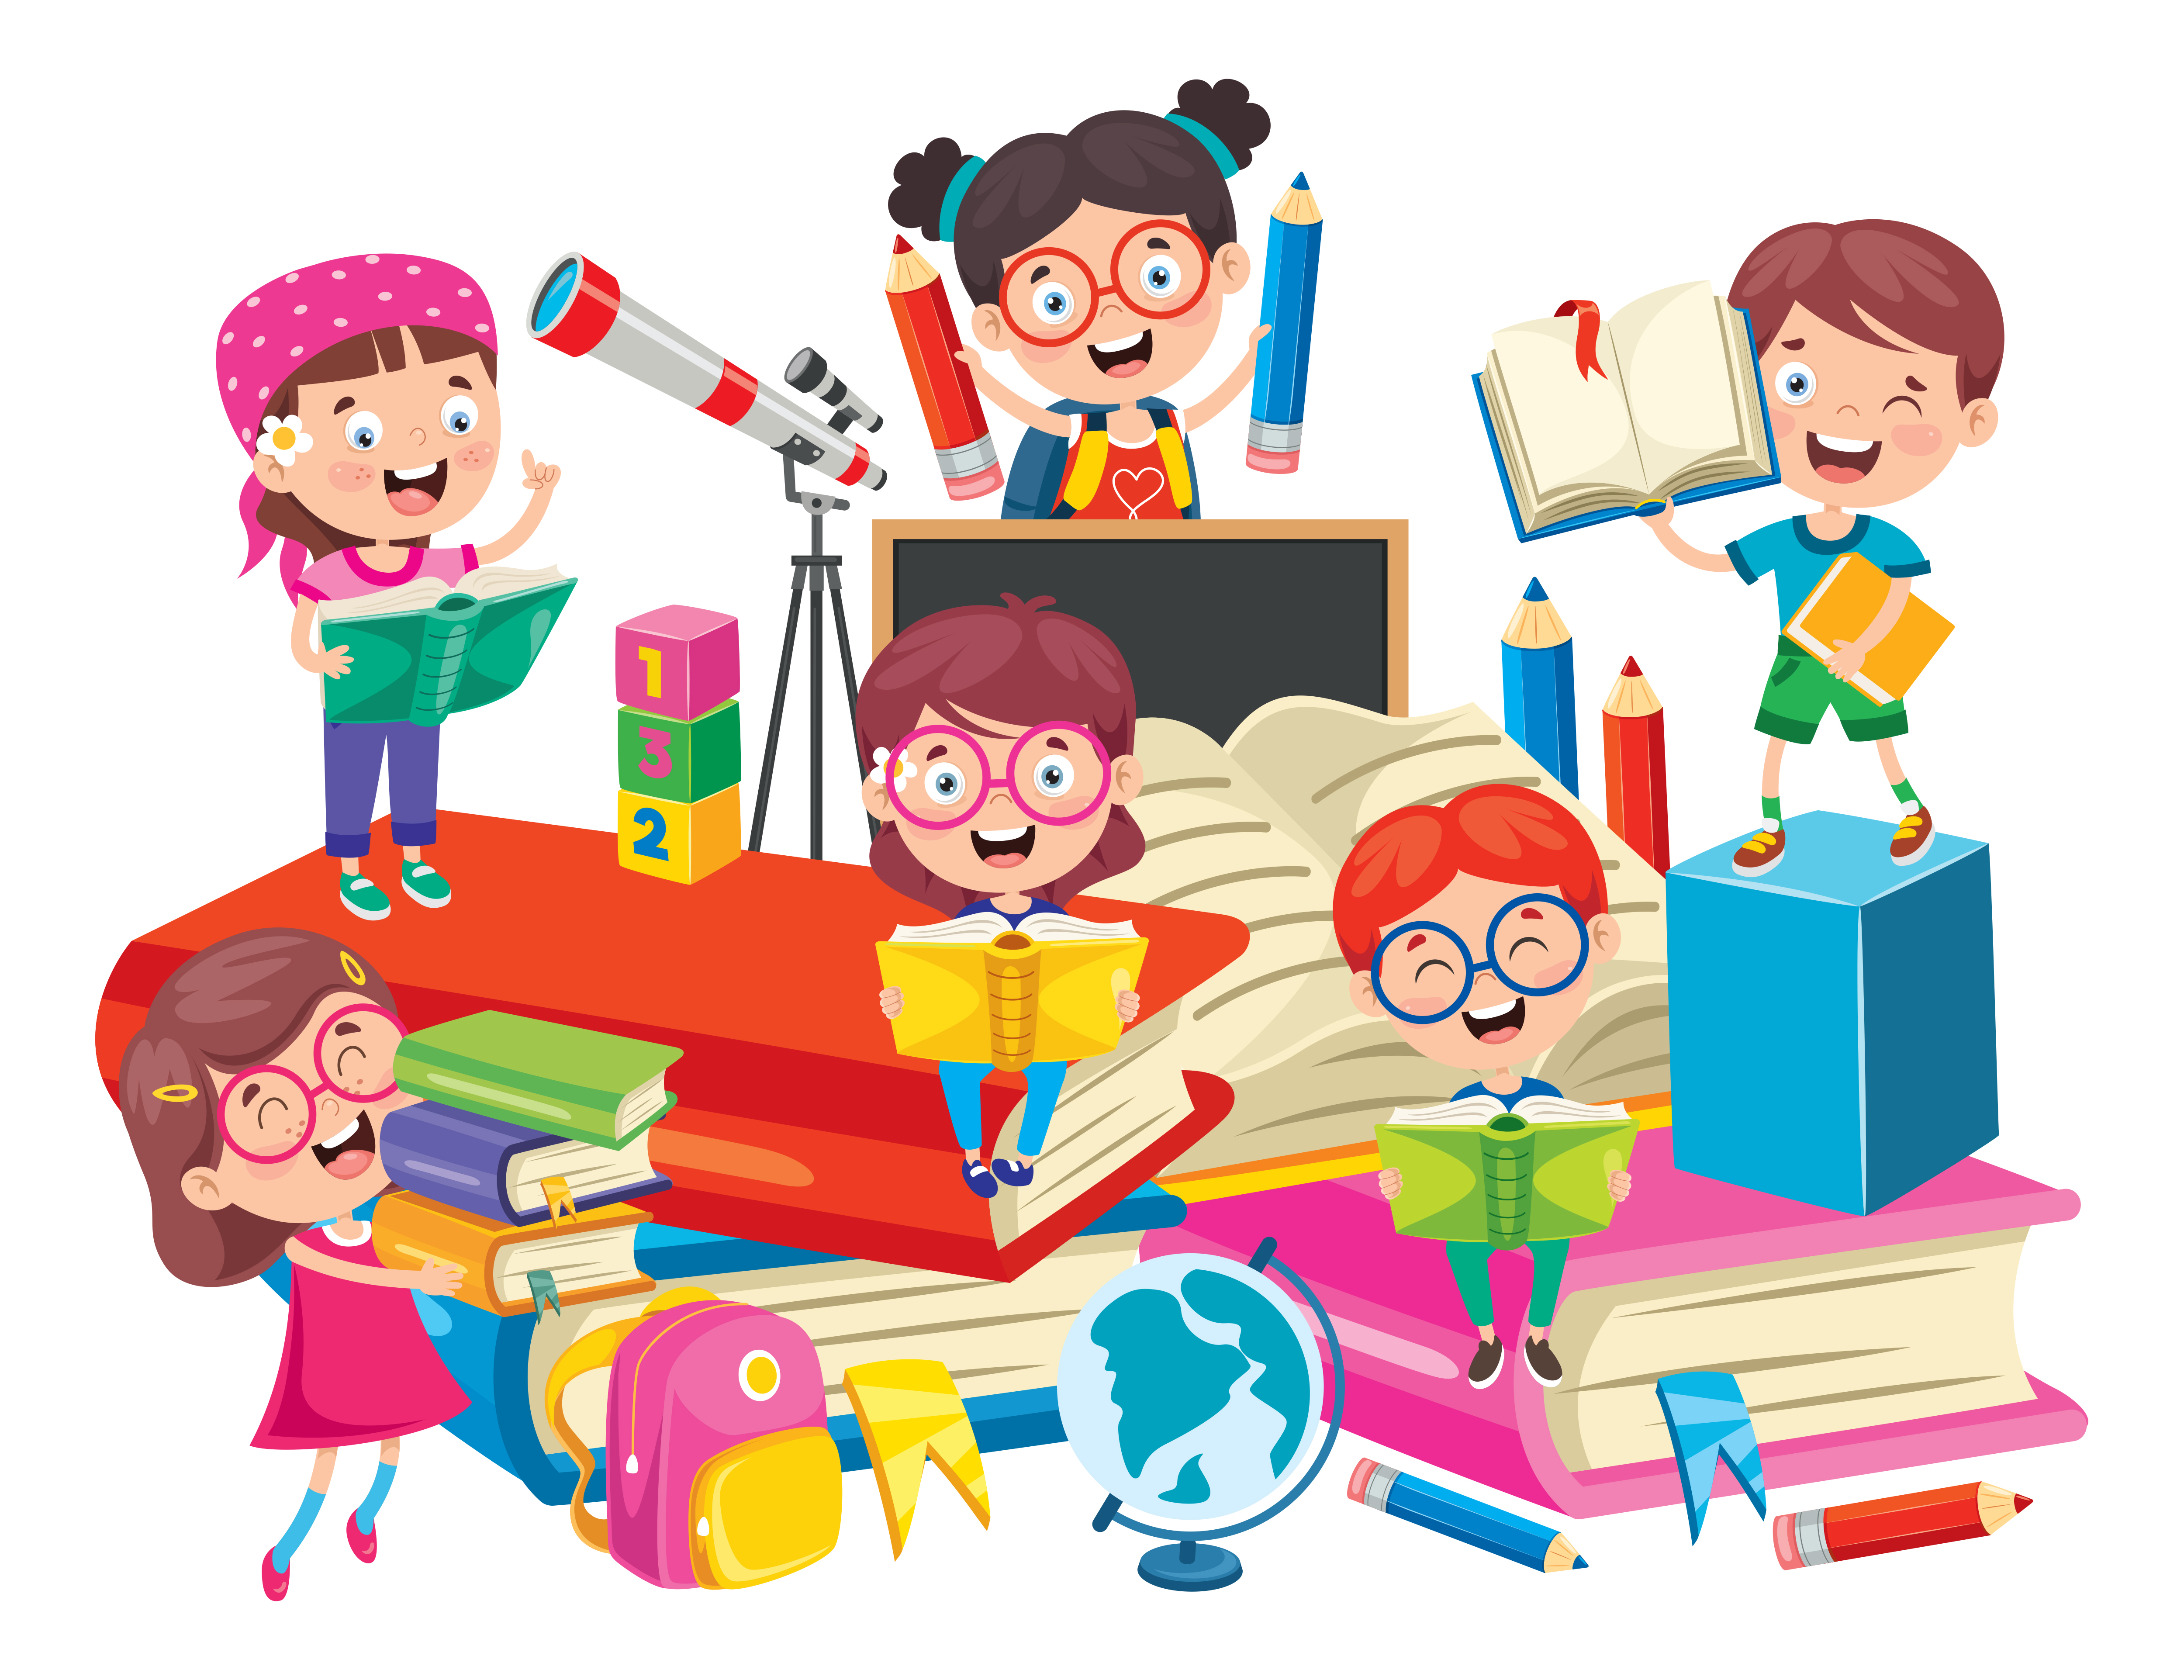 School Kids On Big Books Having Fun Learning Download Free Vectors Clipart Graphics Vector Art